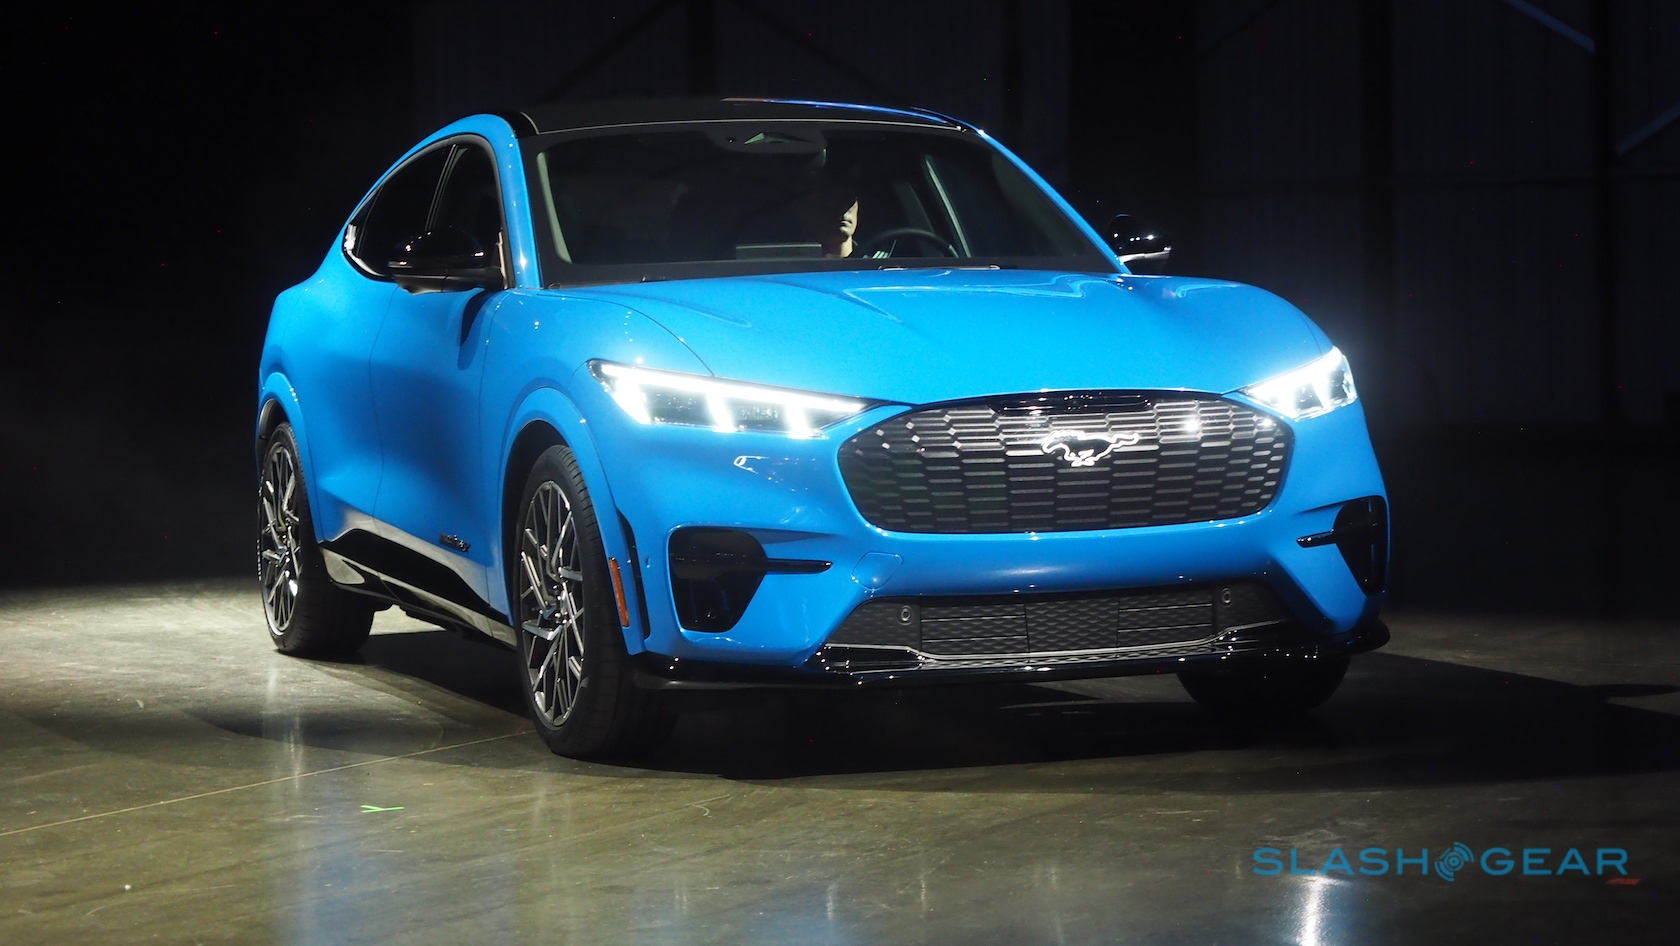 Ford Mustang Mach-E first look: Electric SUV takes on ...